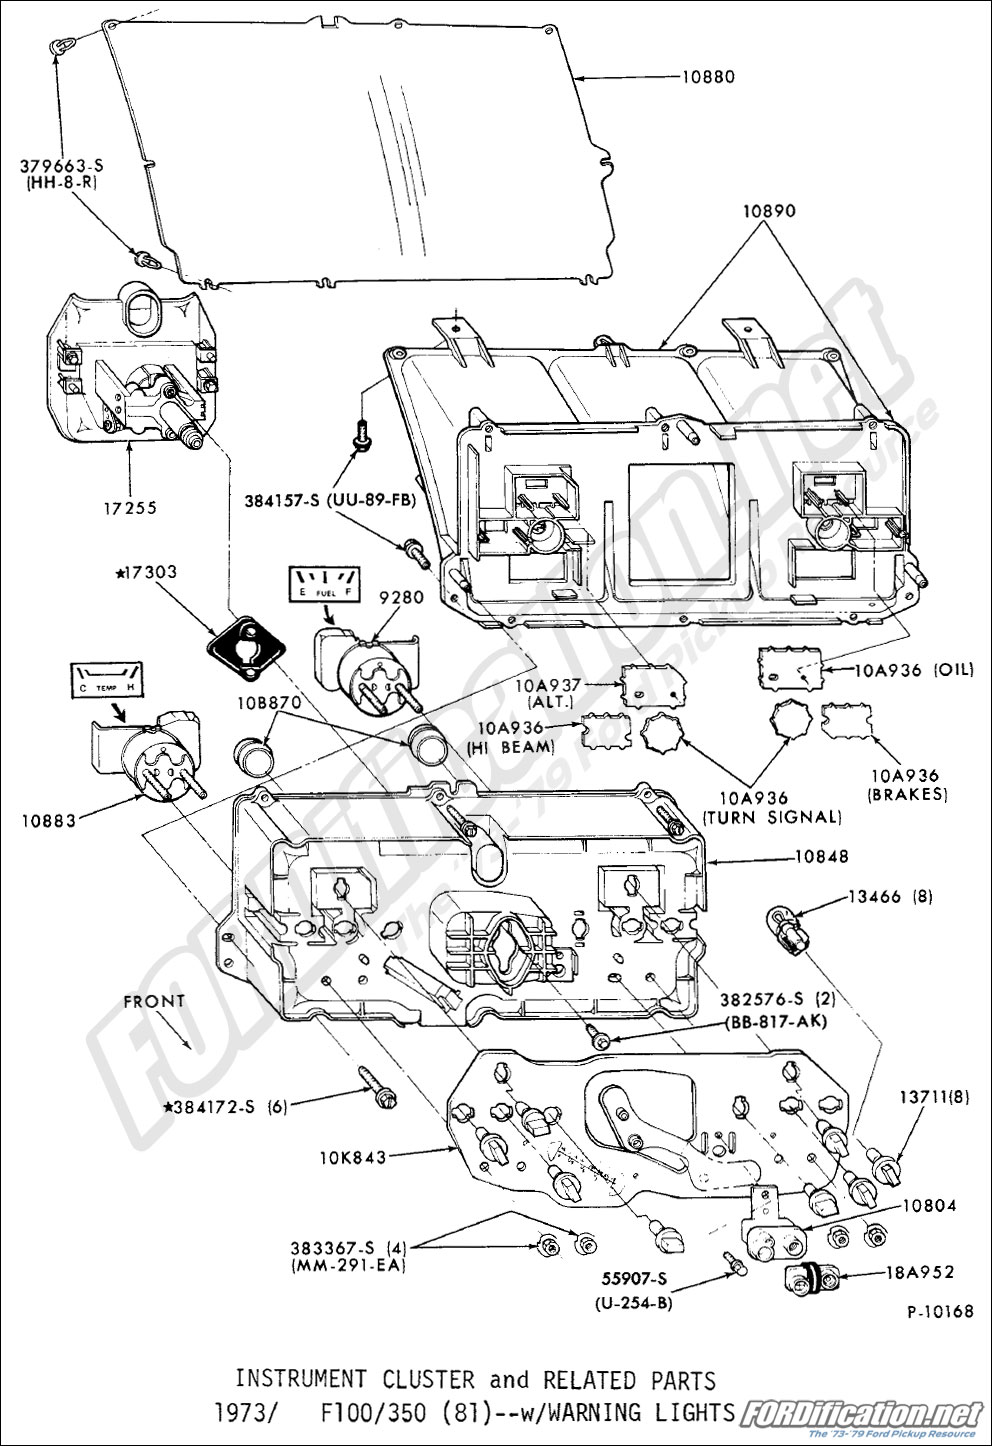 1973 chevy c20 wiring diagram  1973  free engine image for